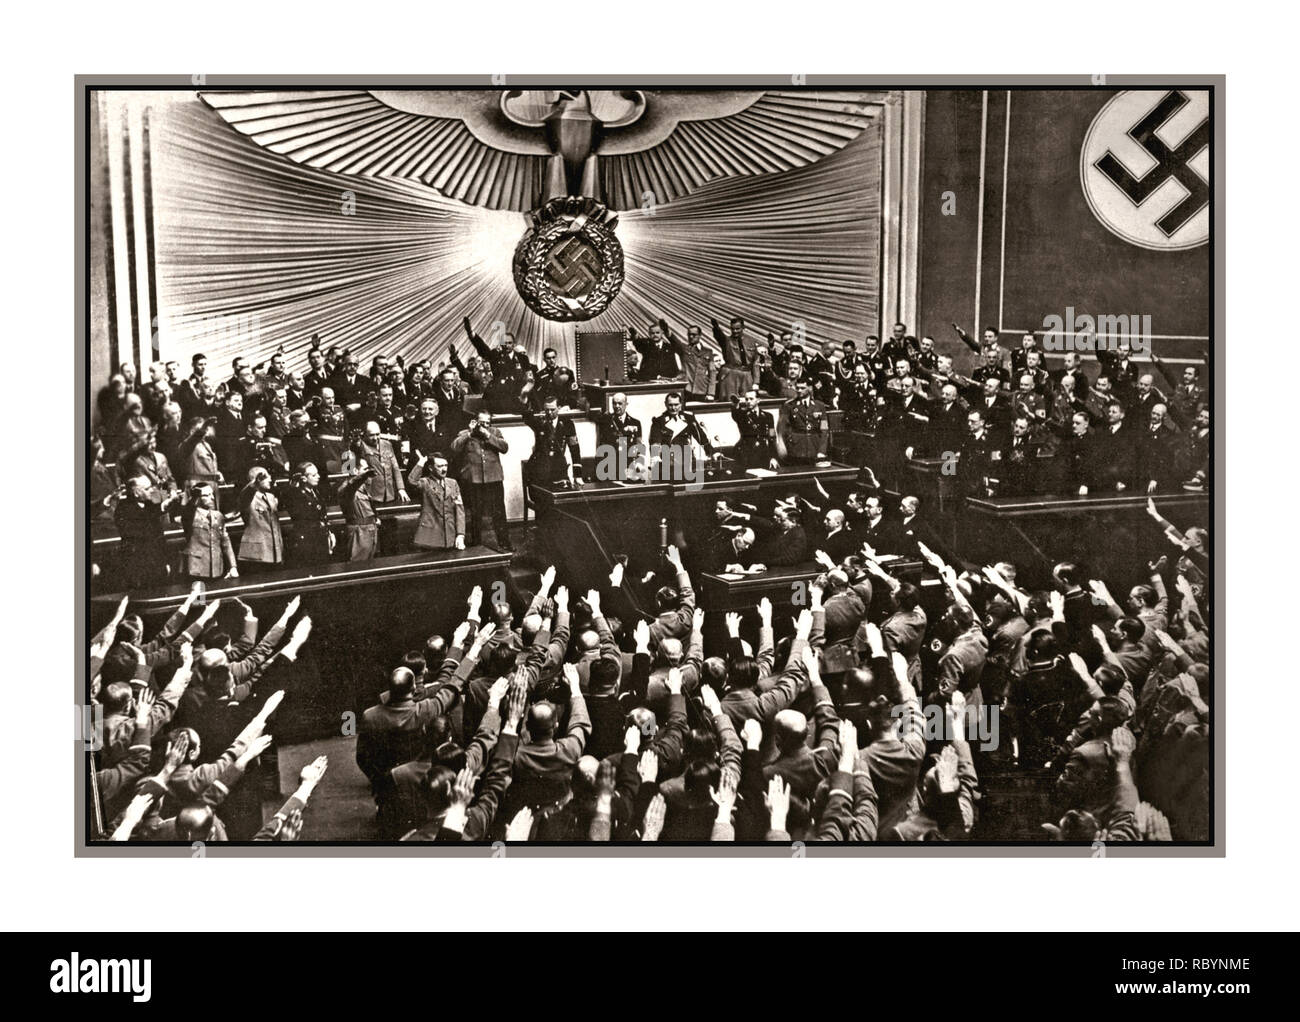 """1938 Adolf Hitler receiving a storm of applause and Heil Hitler salutes from the Reichstag deputies after the announcement of the """"peaceful"""" occupation/ Anschluss of Austria.   Location: Berlin, Germany Date: March 1938 - Stock Image"""